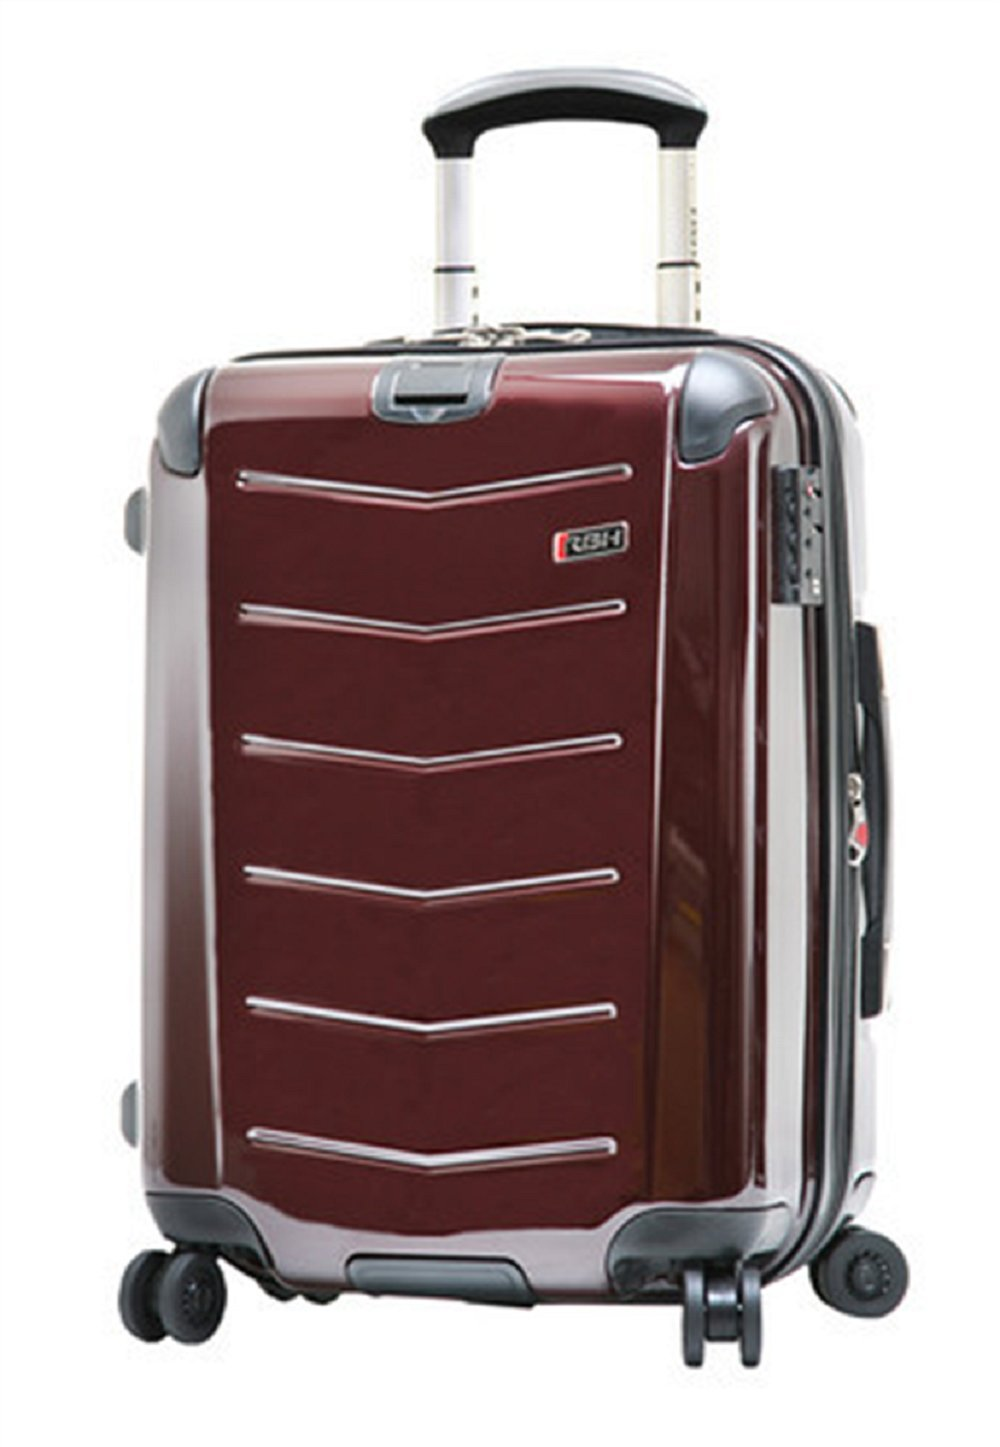 Ricardo Beverly Hills Luggage Rodeo Drive 21-Inch 4-Wheel Expandable Wheelaboard, Black Cherry, One Size